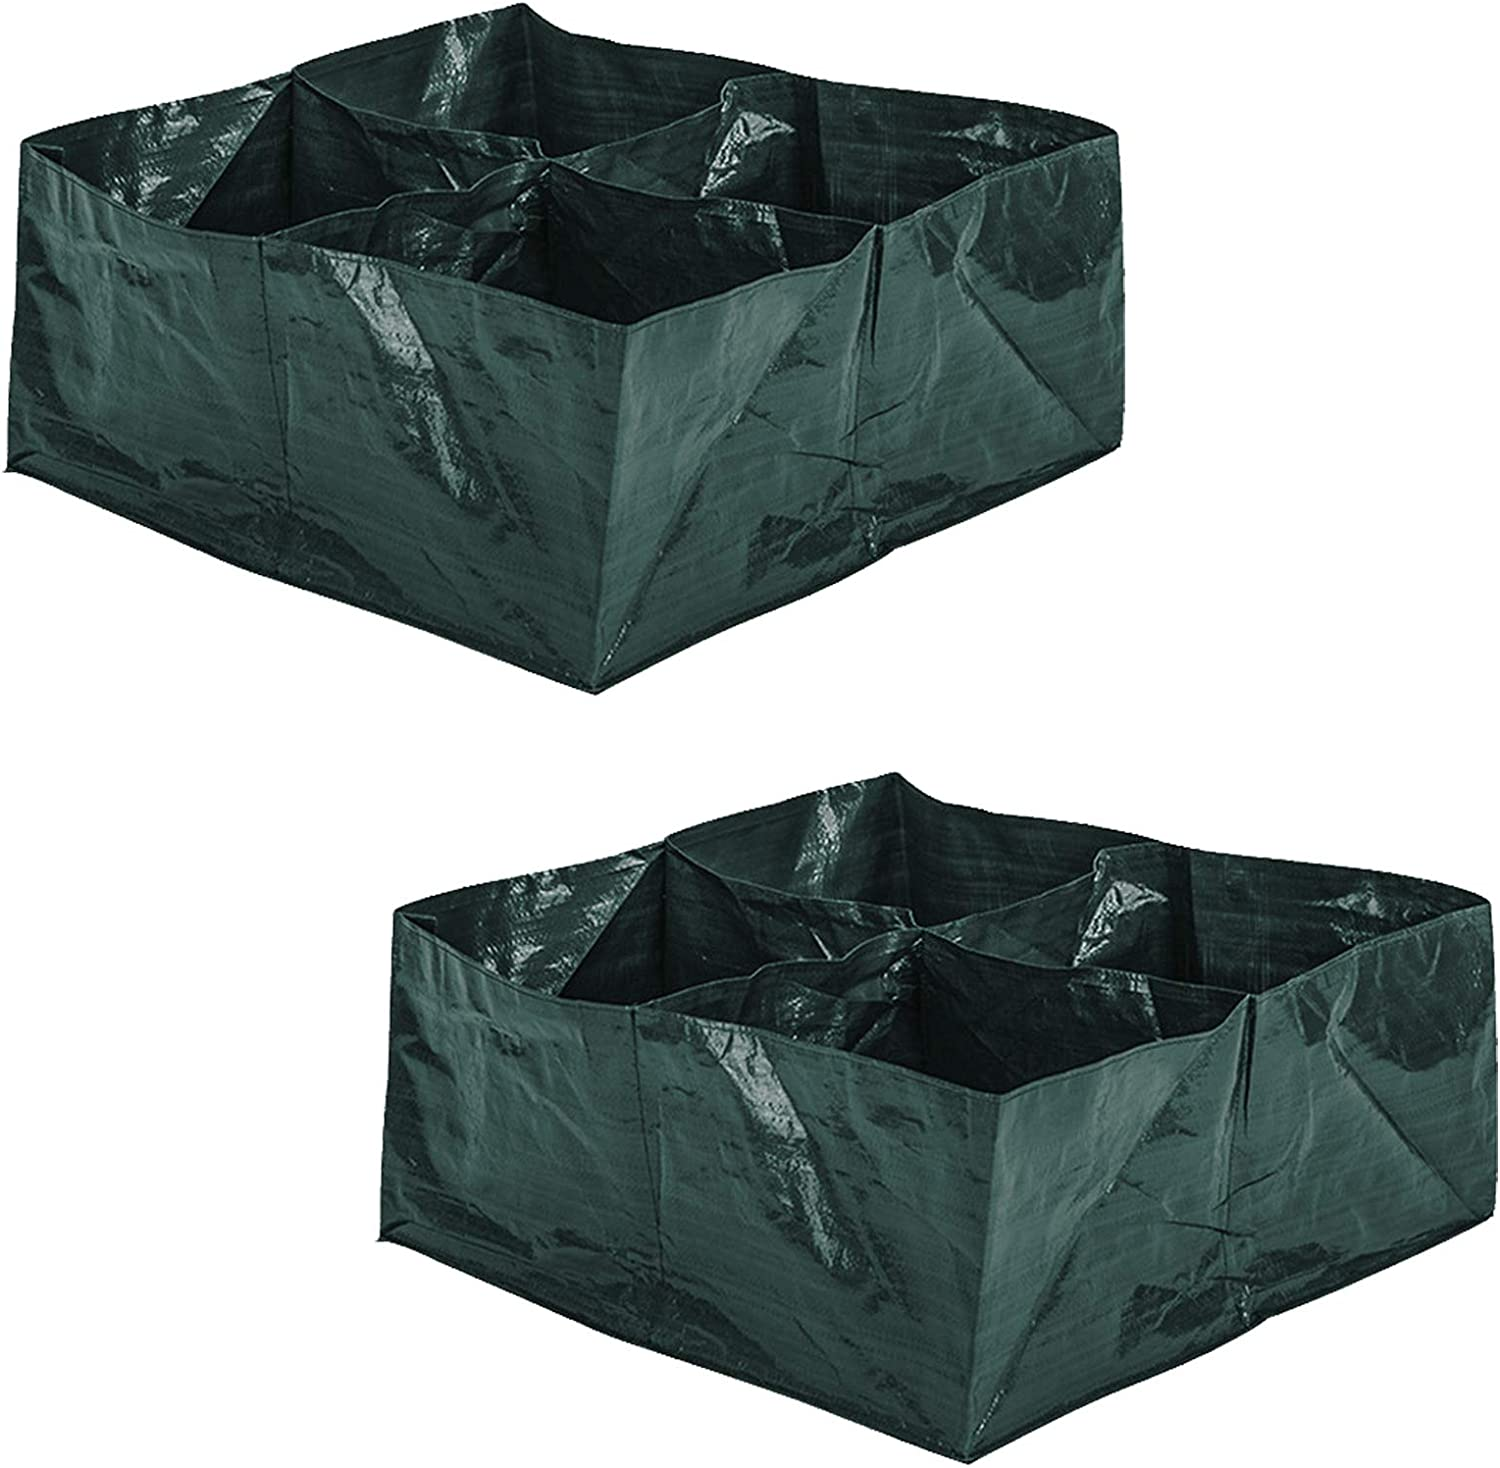 ZeeDix 2 Pack Fabric Raised Garden Bed- 4 Divided Grids Square Raised Garden Planter Grow Pot for Outdoor Herb Flower Vegetable Plants